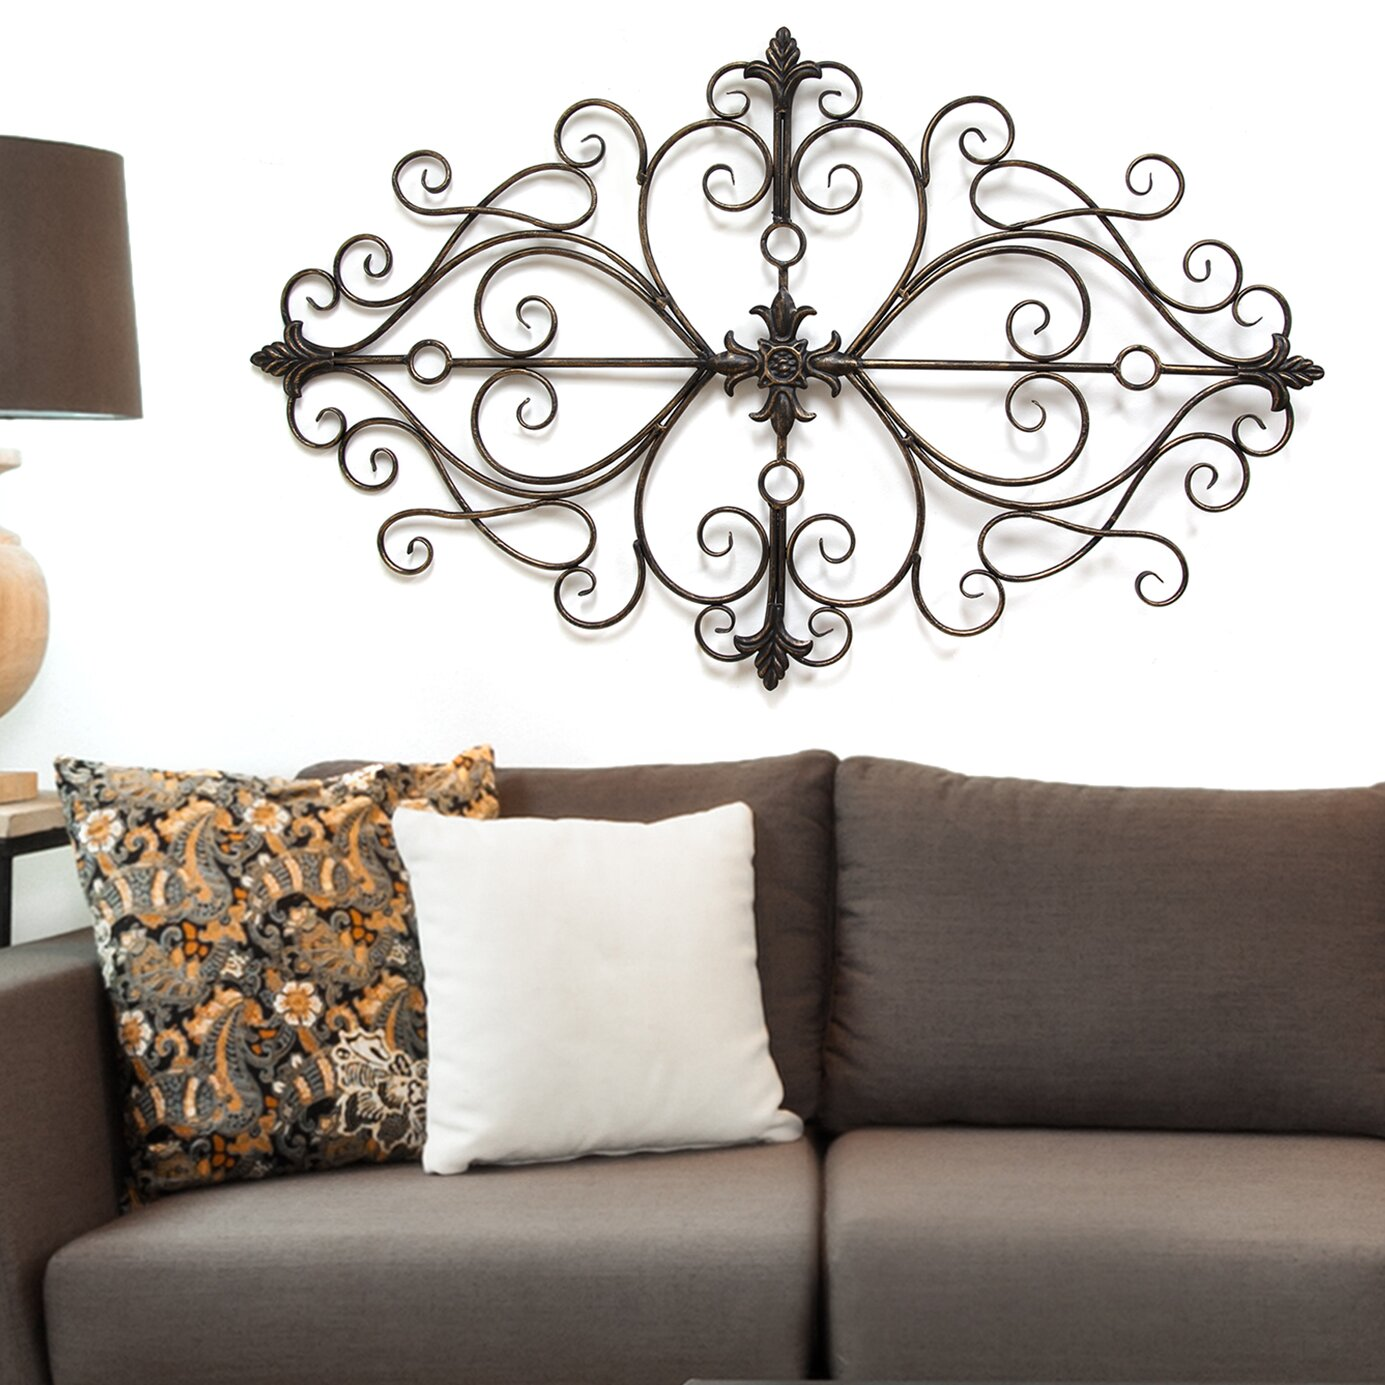 Stratton Home Decor Traditional Scroll Wall Décor ...